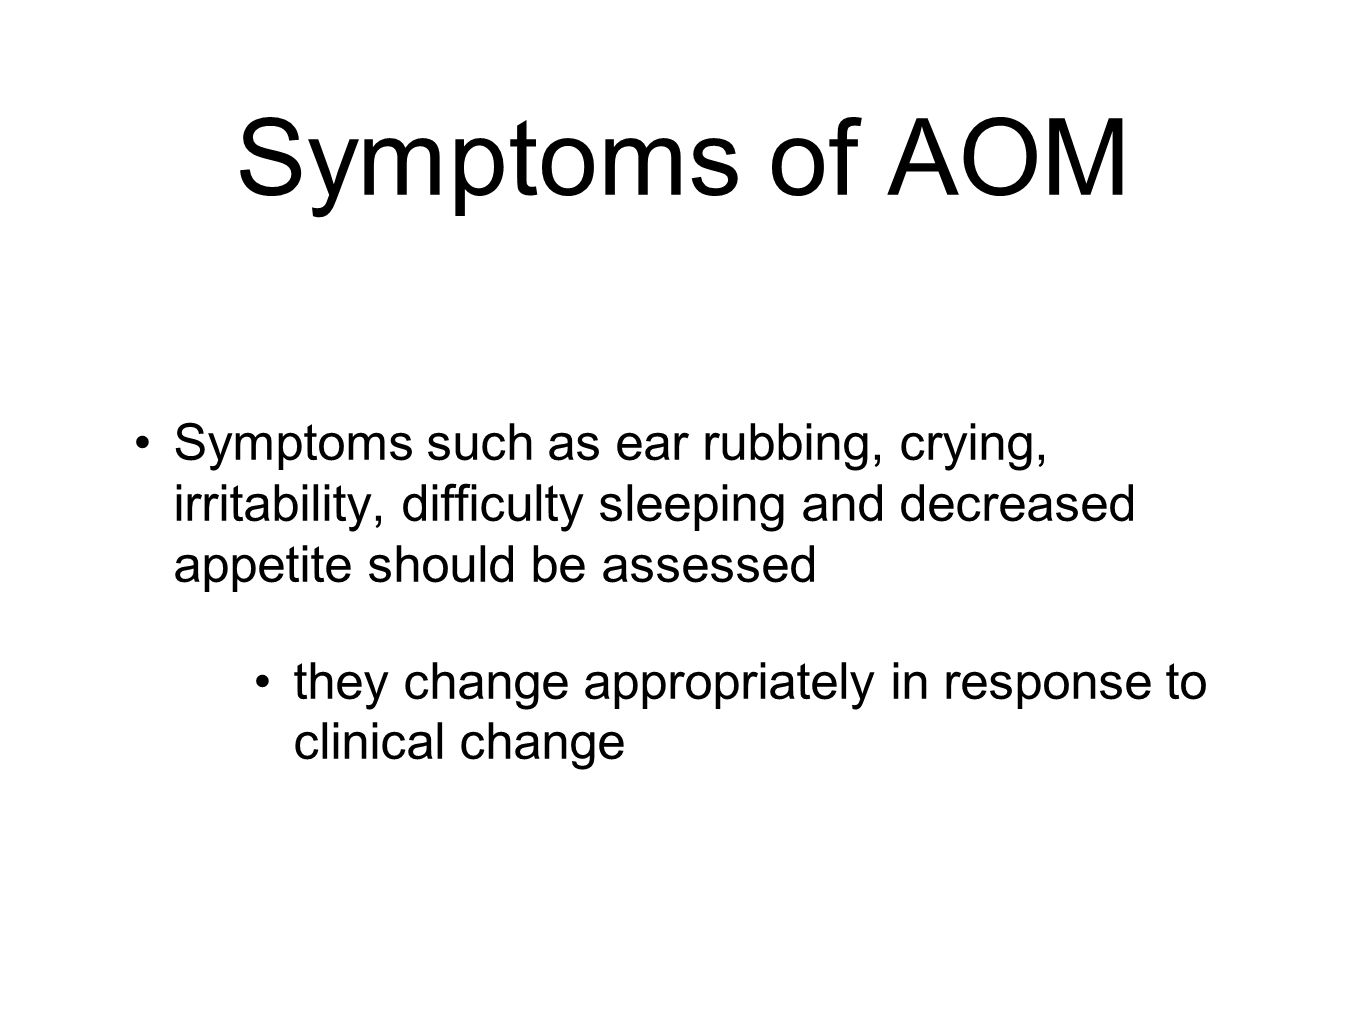 Symptoms of AOM Symptoms such as ear rubbing, crying, irritability, difficulty sleeping and decreased appetite should be assessed.